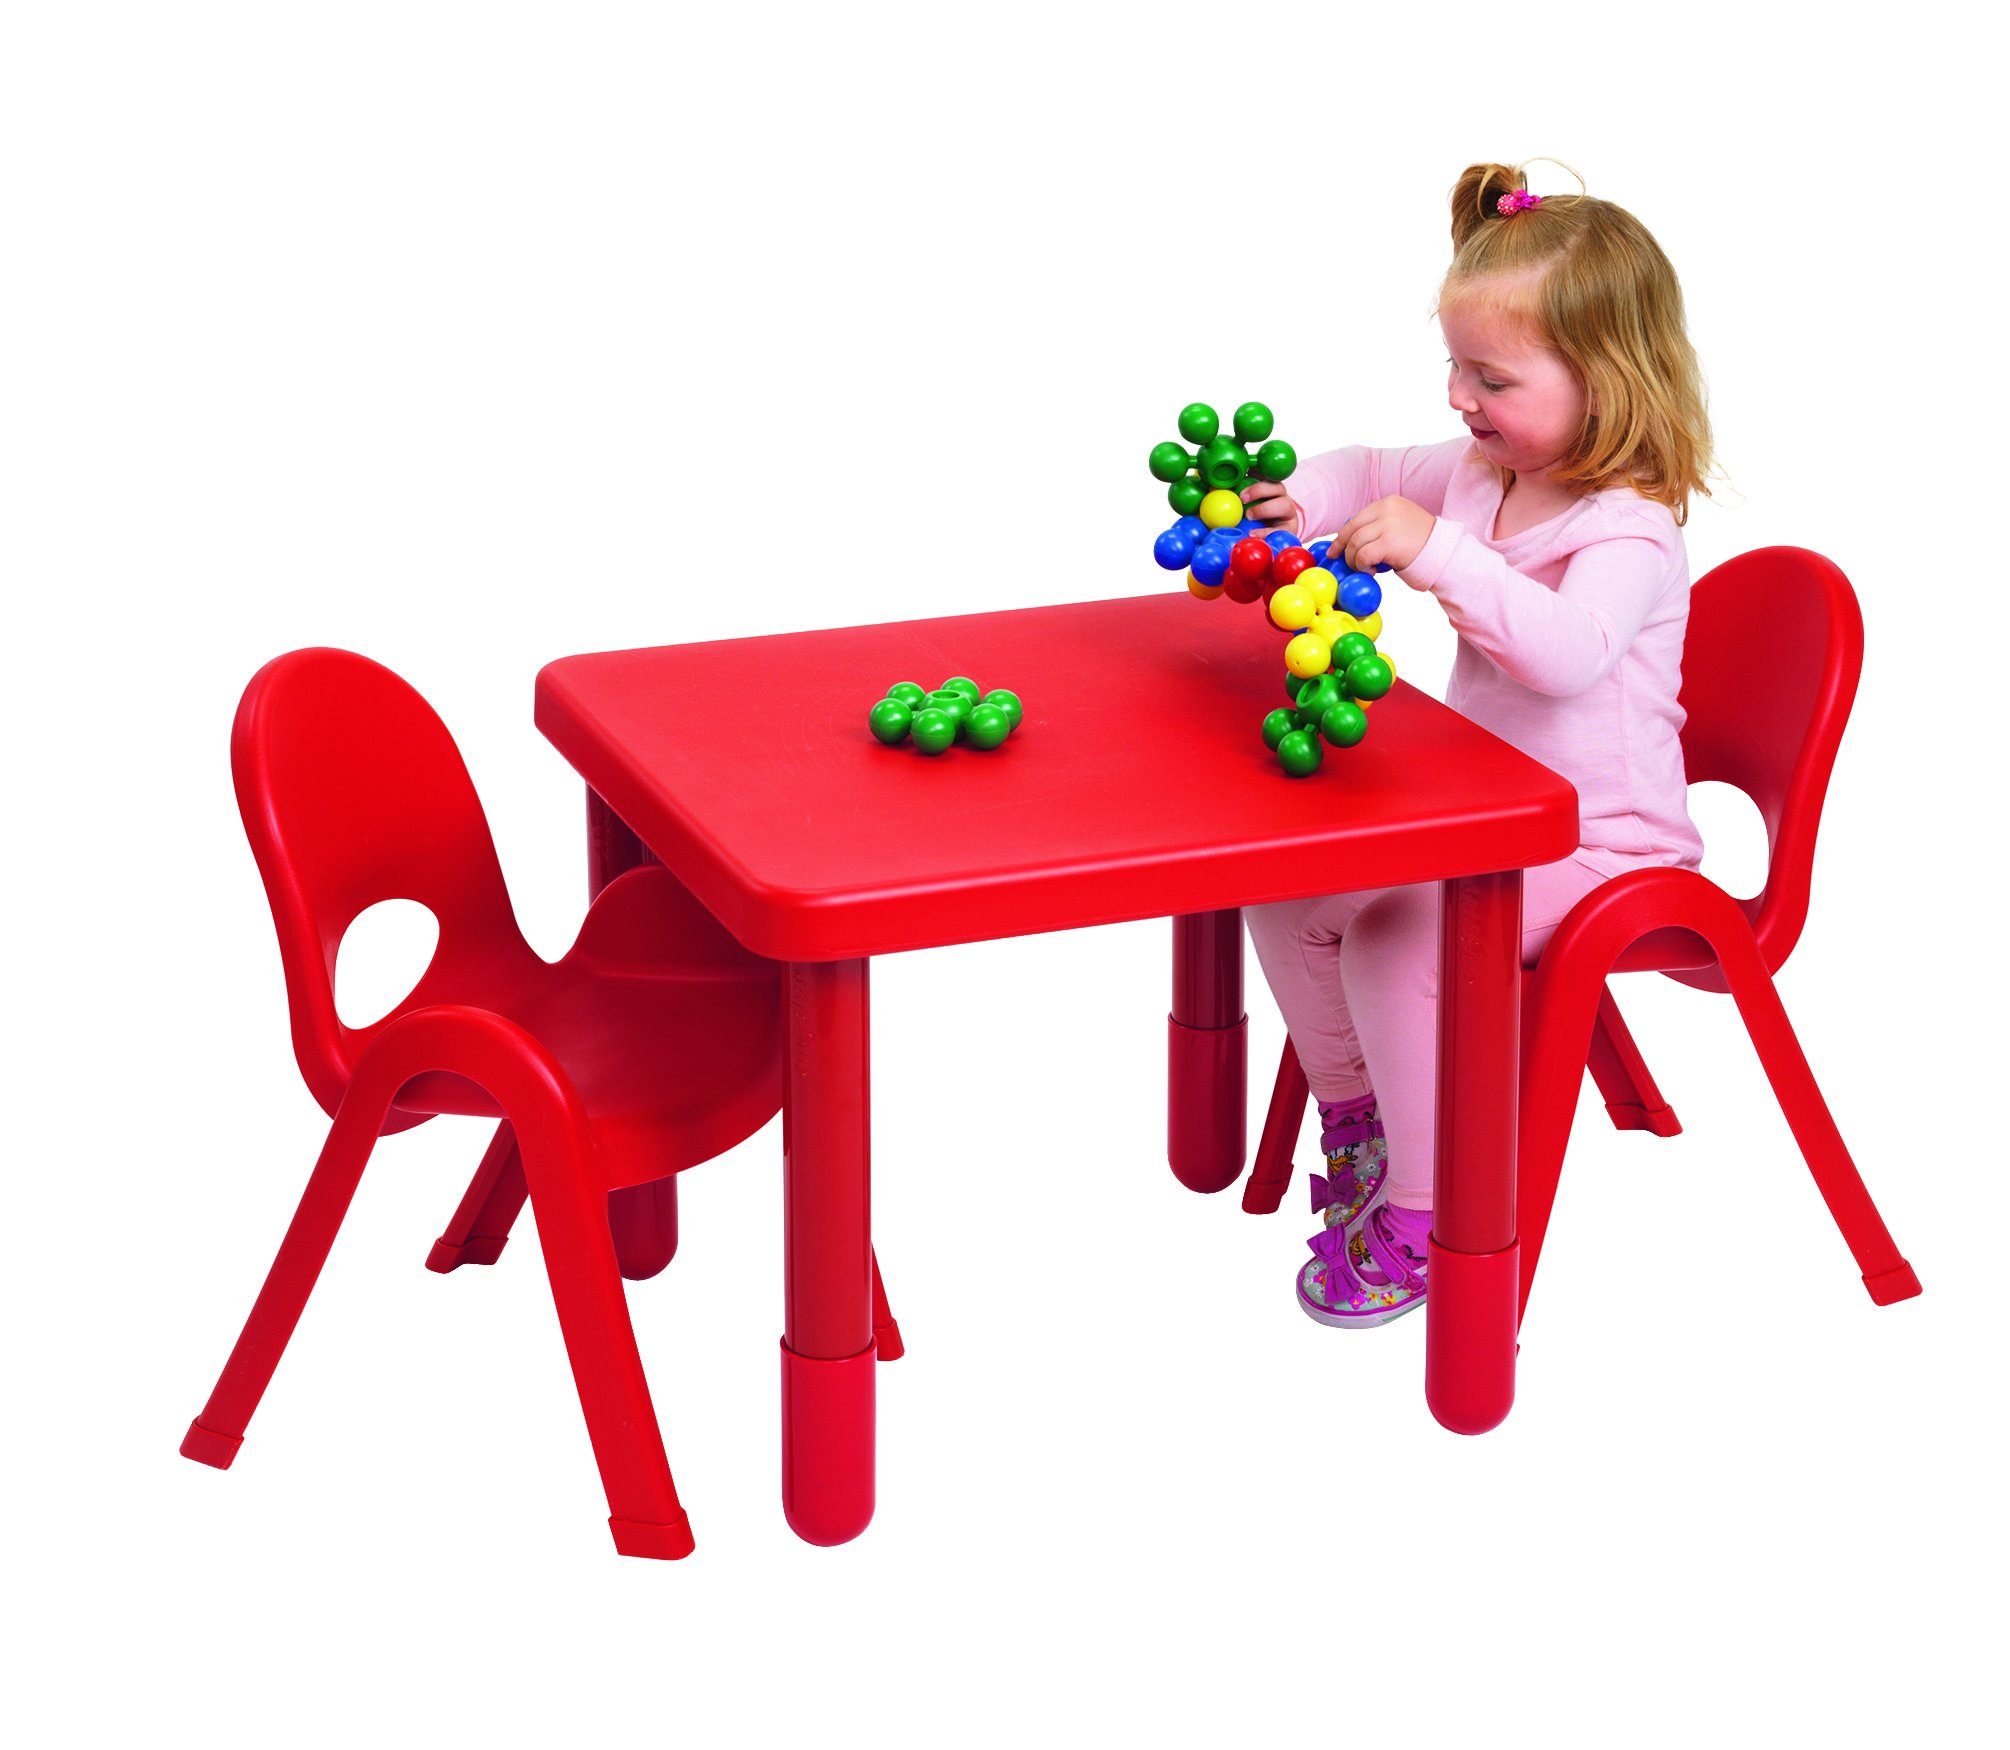 Angeles MyValue Candy Apple Red Table and Chair (Set of 2) by Angeles